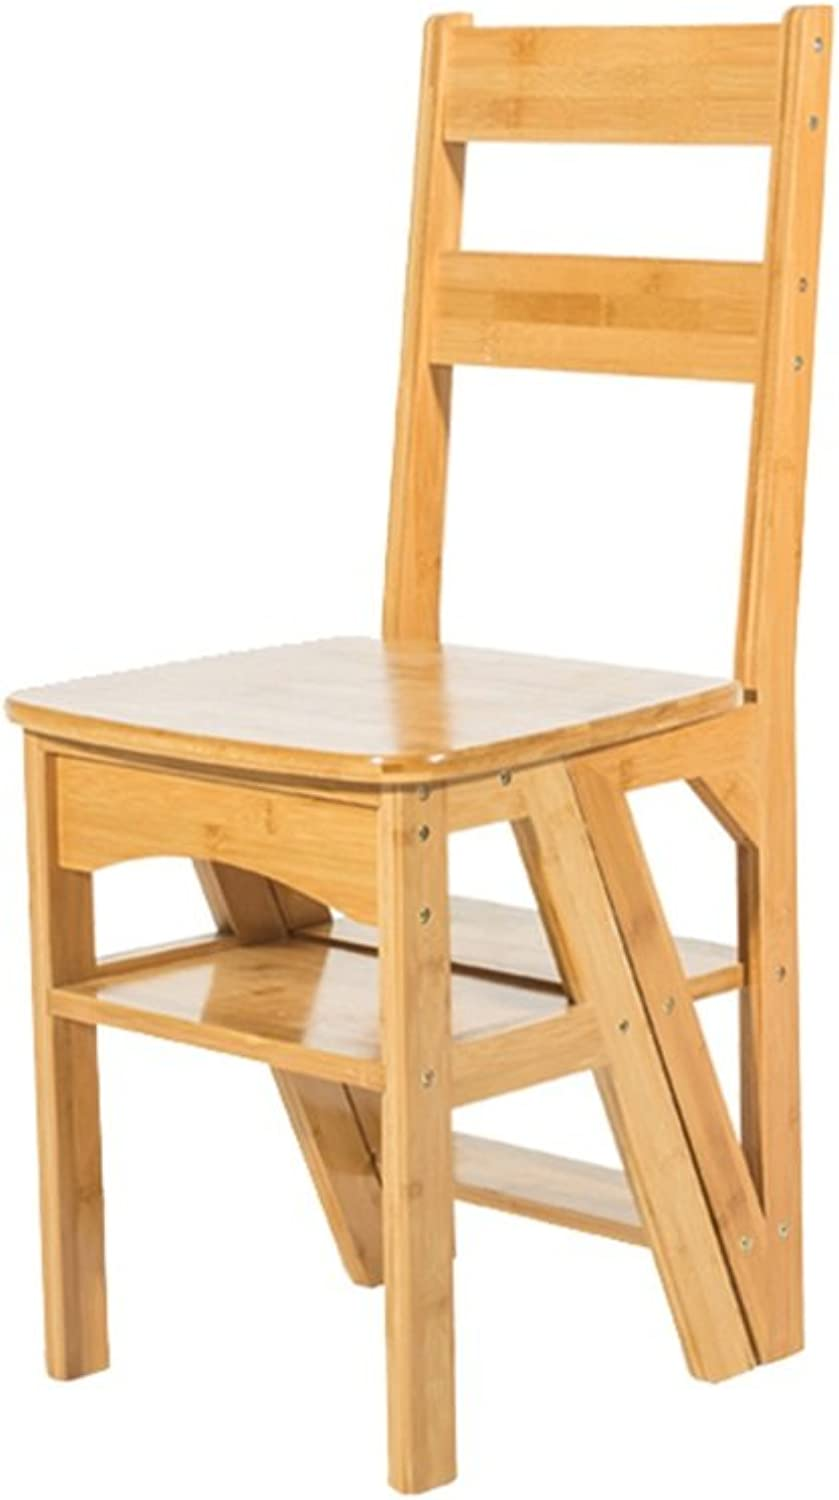 Chair Stool Dining Step Folding Creative Solid Wood Bench Home Multi-Function Four Step Ladder